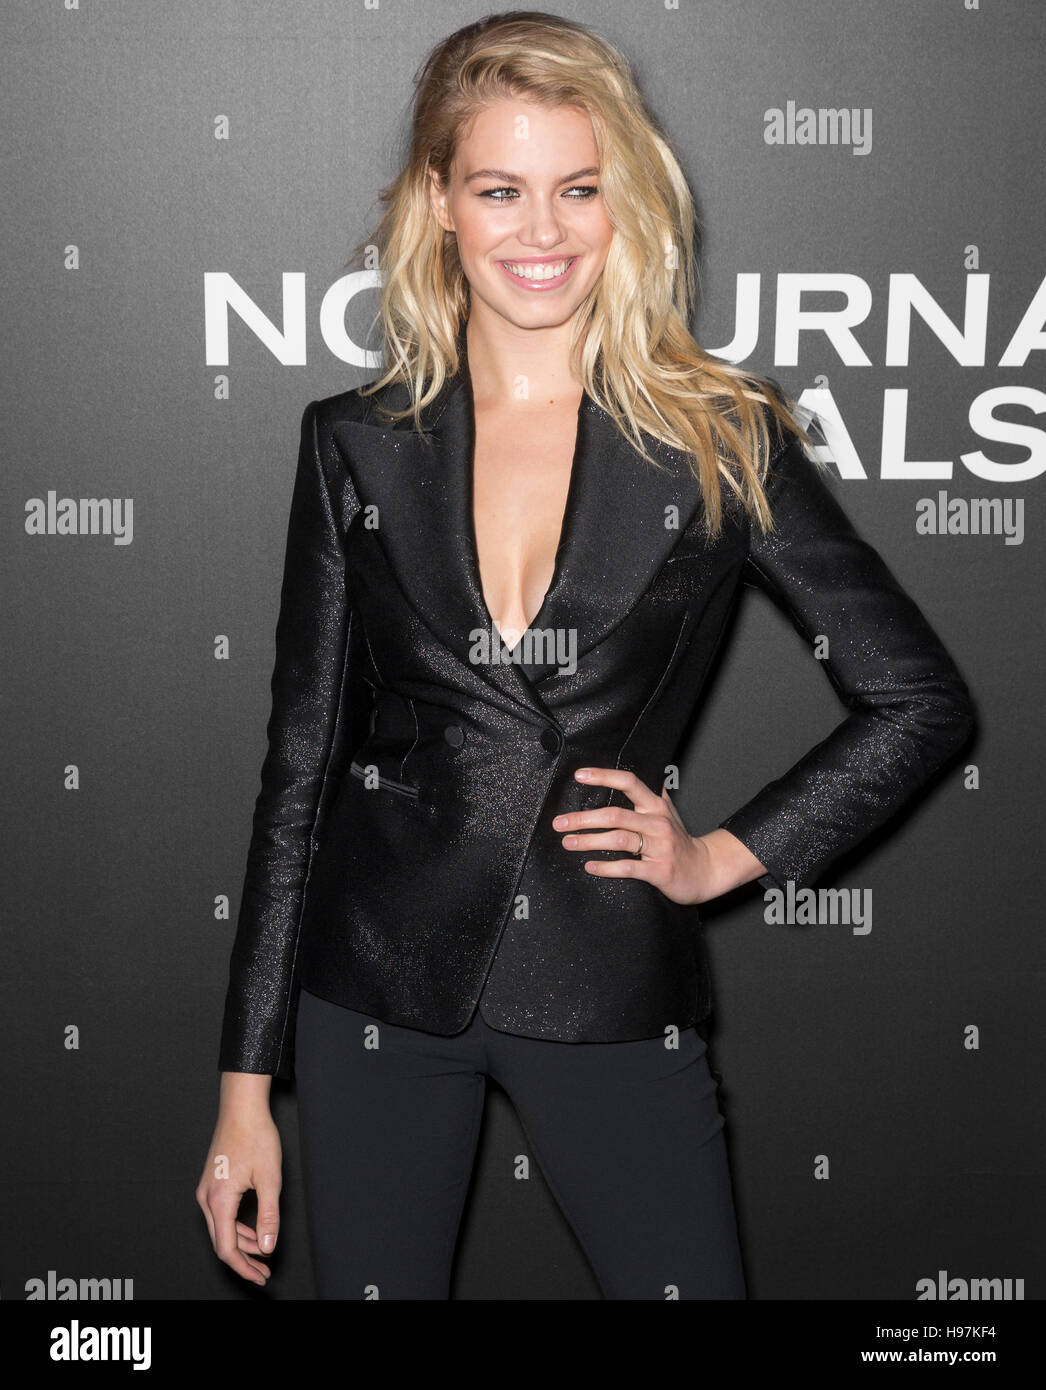 New York City, USA - November 17, 2016: Model Hailey Clauson attends the 'Nocturnal Animals' New York premiere - Stock Image